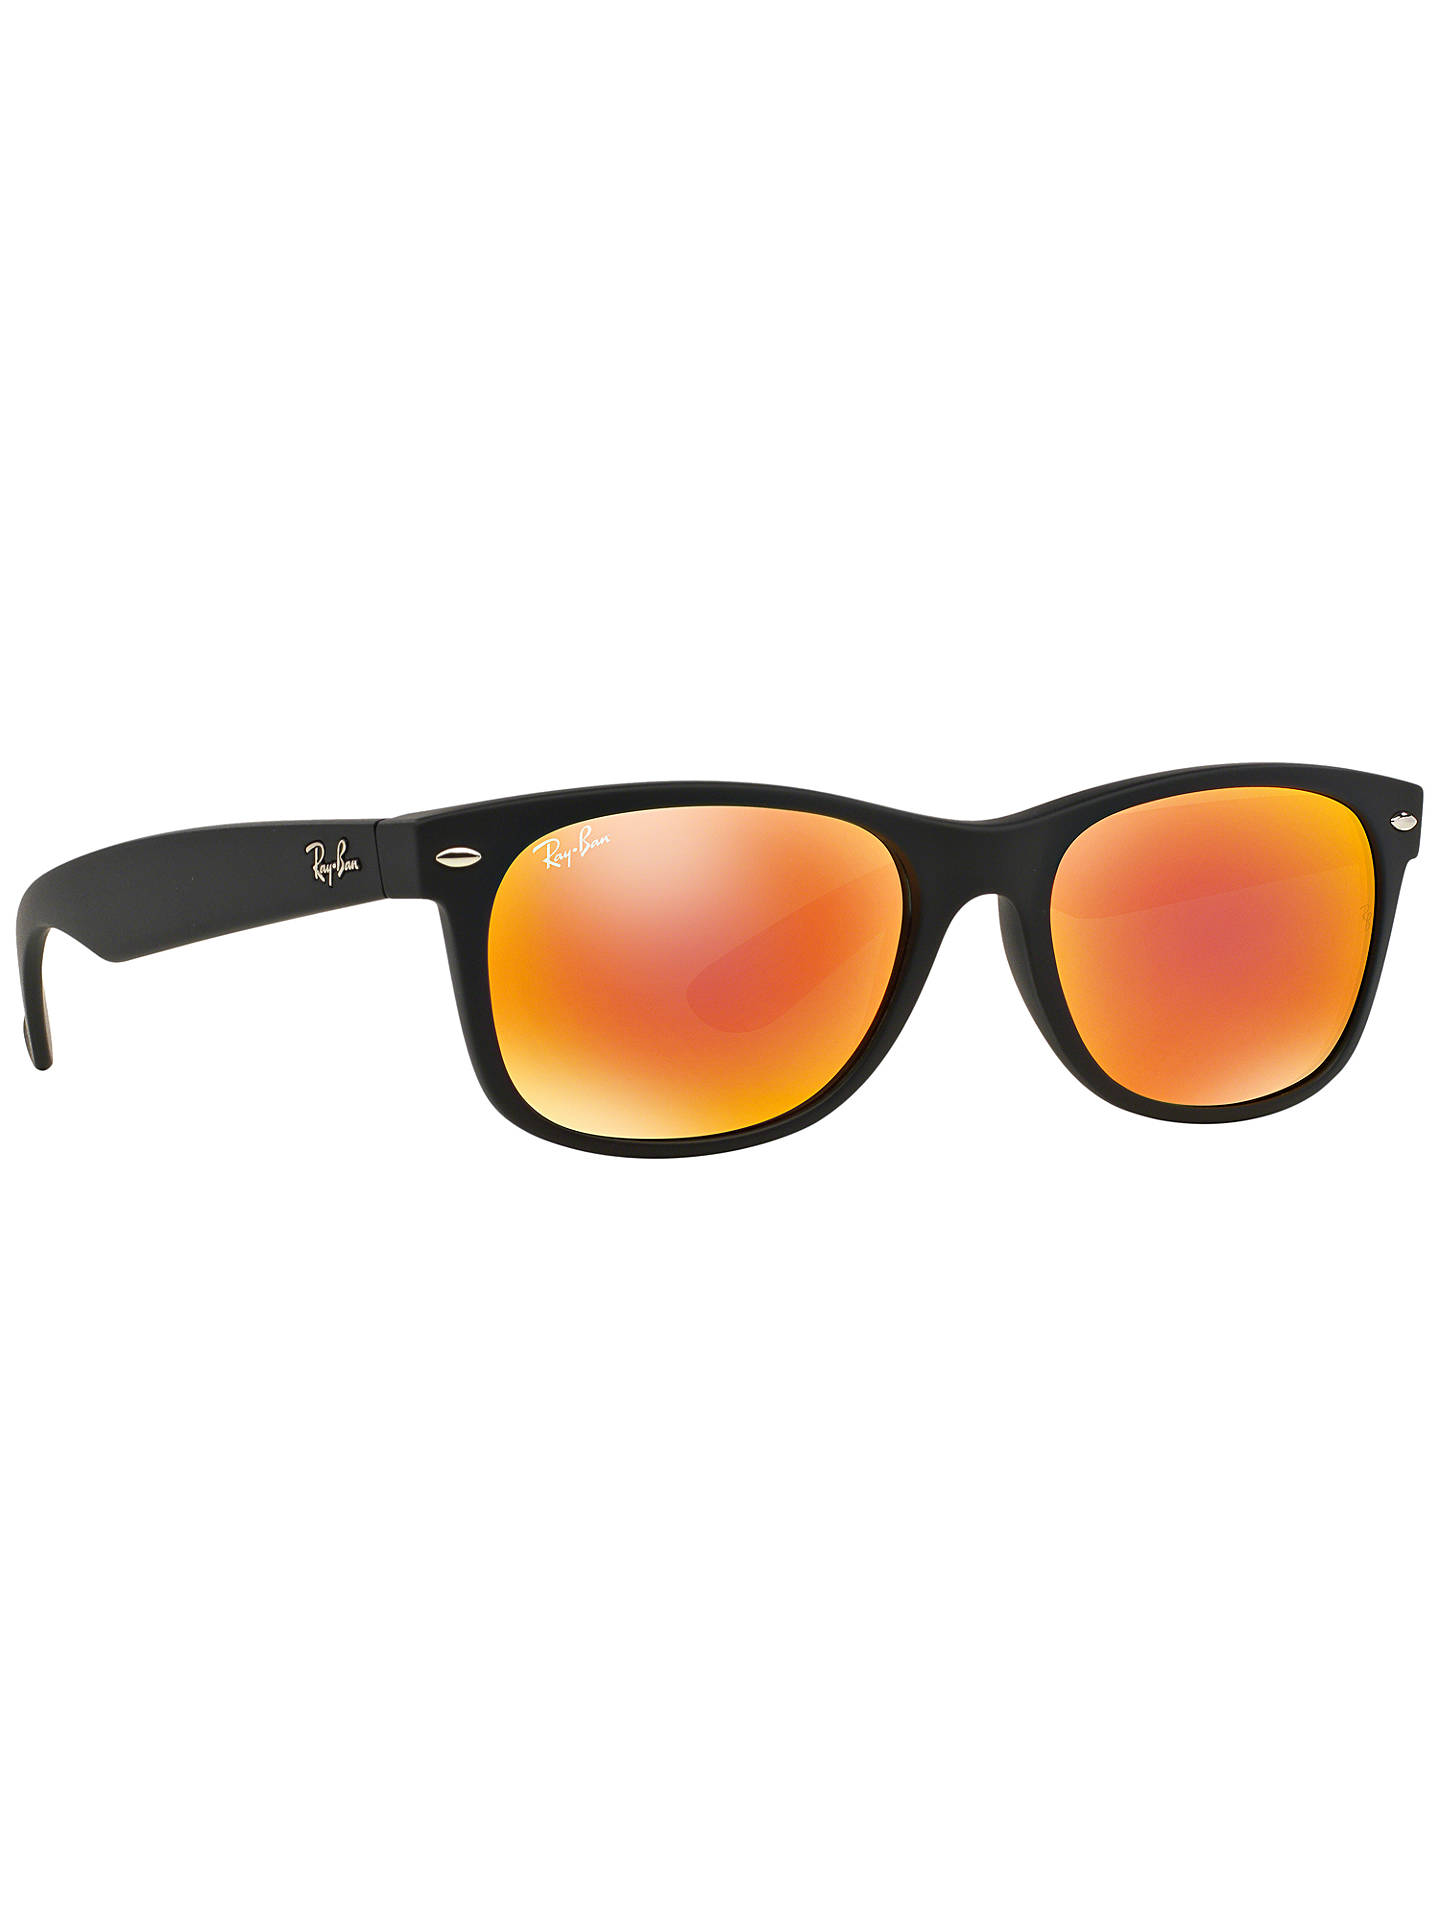 Buy Ray-Ban RB2132 New Wayfarer Sunglasses, Matte Black/Mirror Orange Online at johnlewis.com